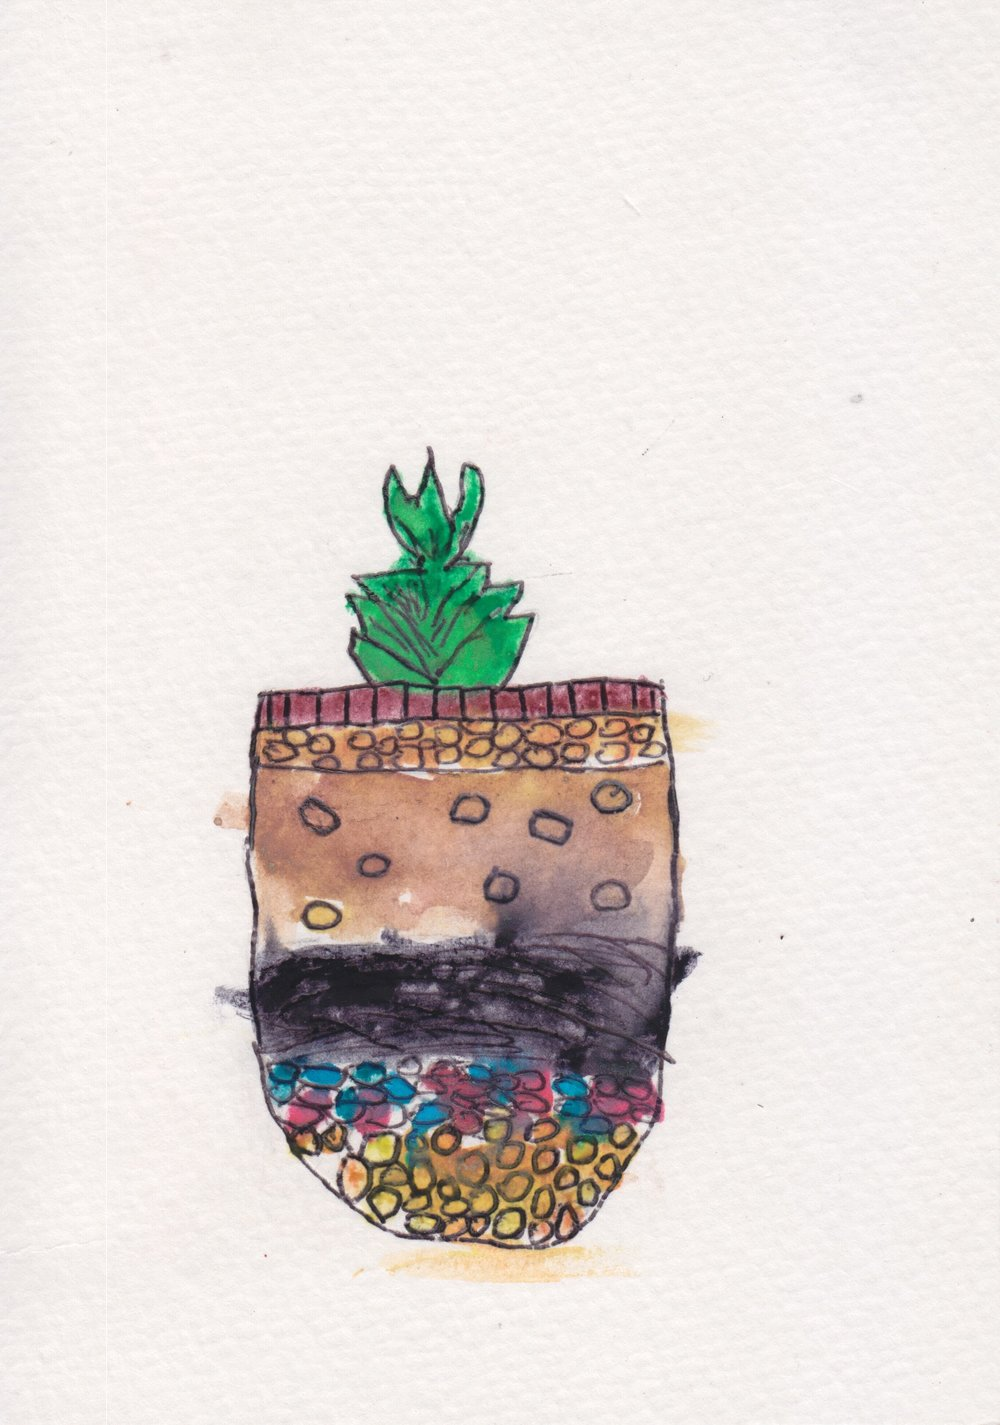 centro_watercolor terrarium_TanishaCruz.jpeg